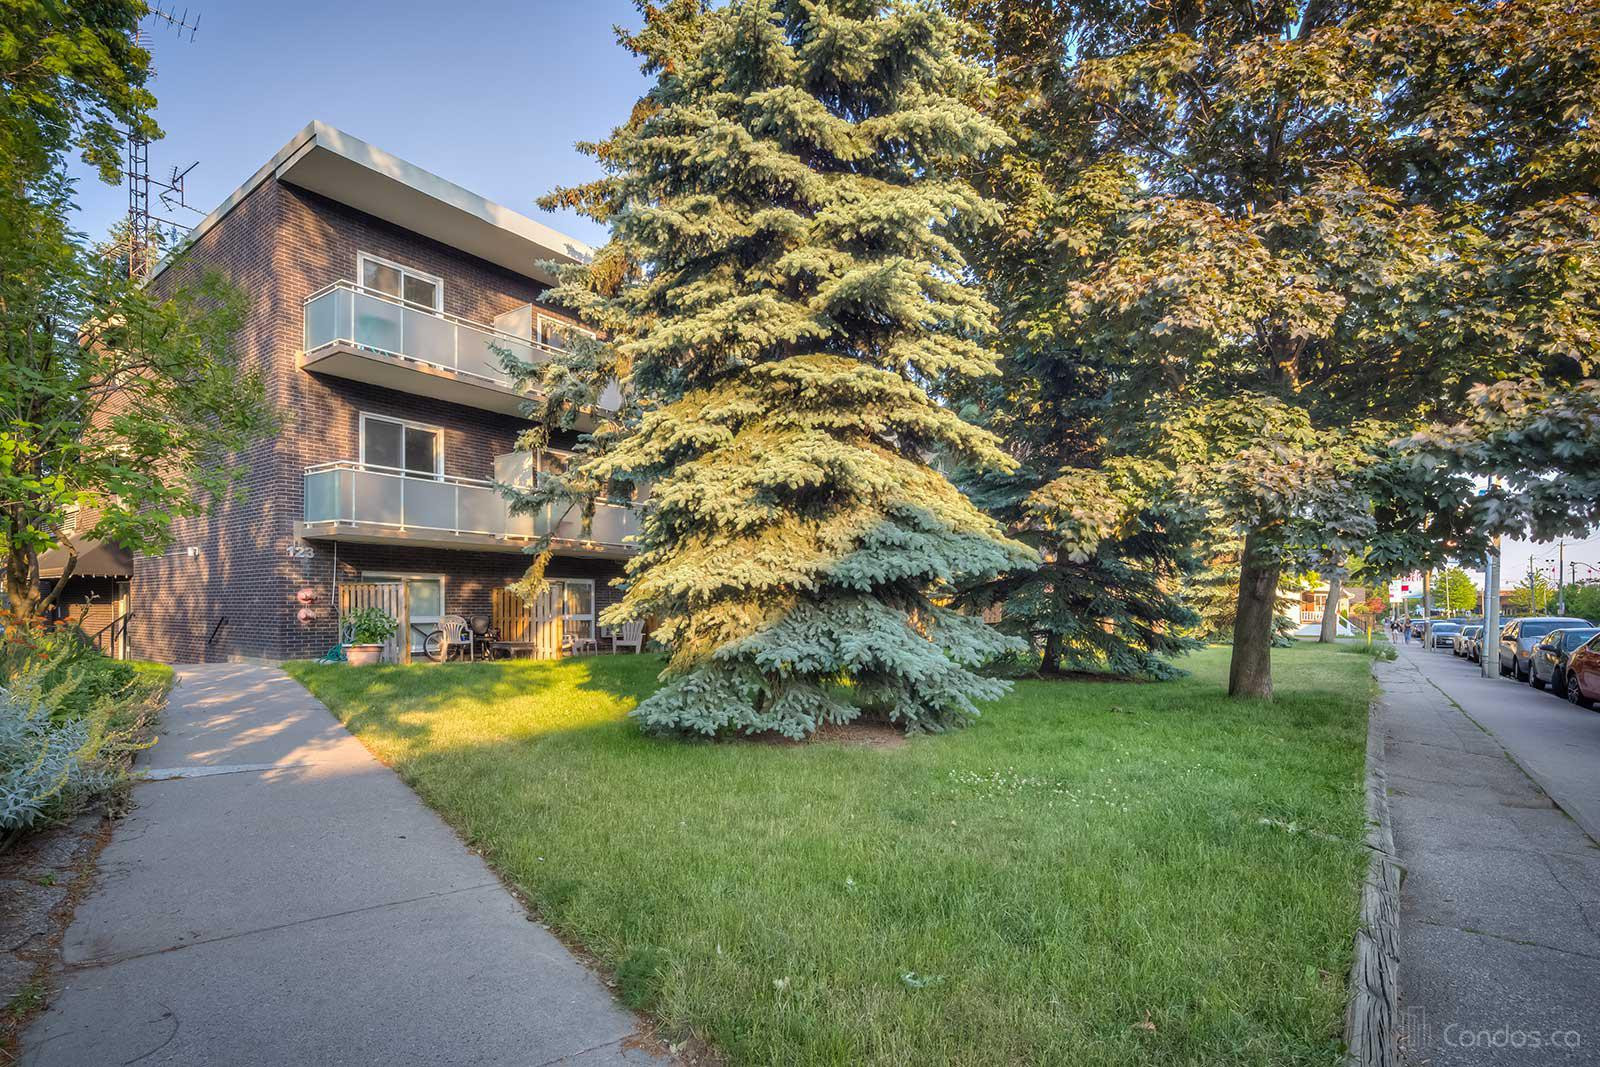 123 Woodbine Avenue Condos at 123 Woodbine Ave, Toronto 0